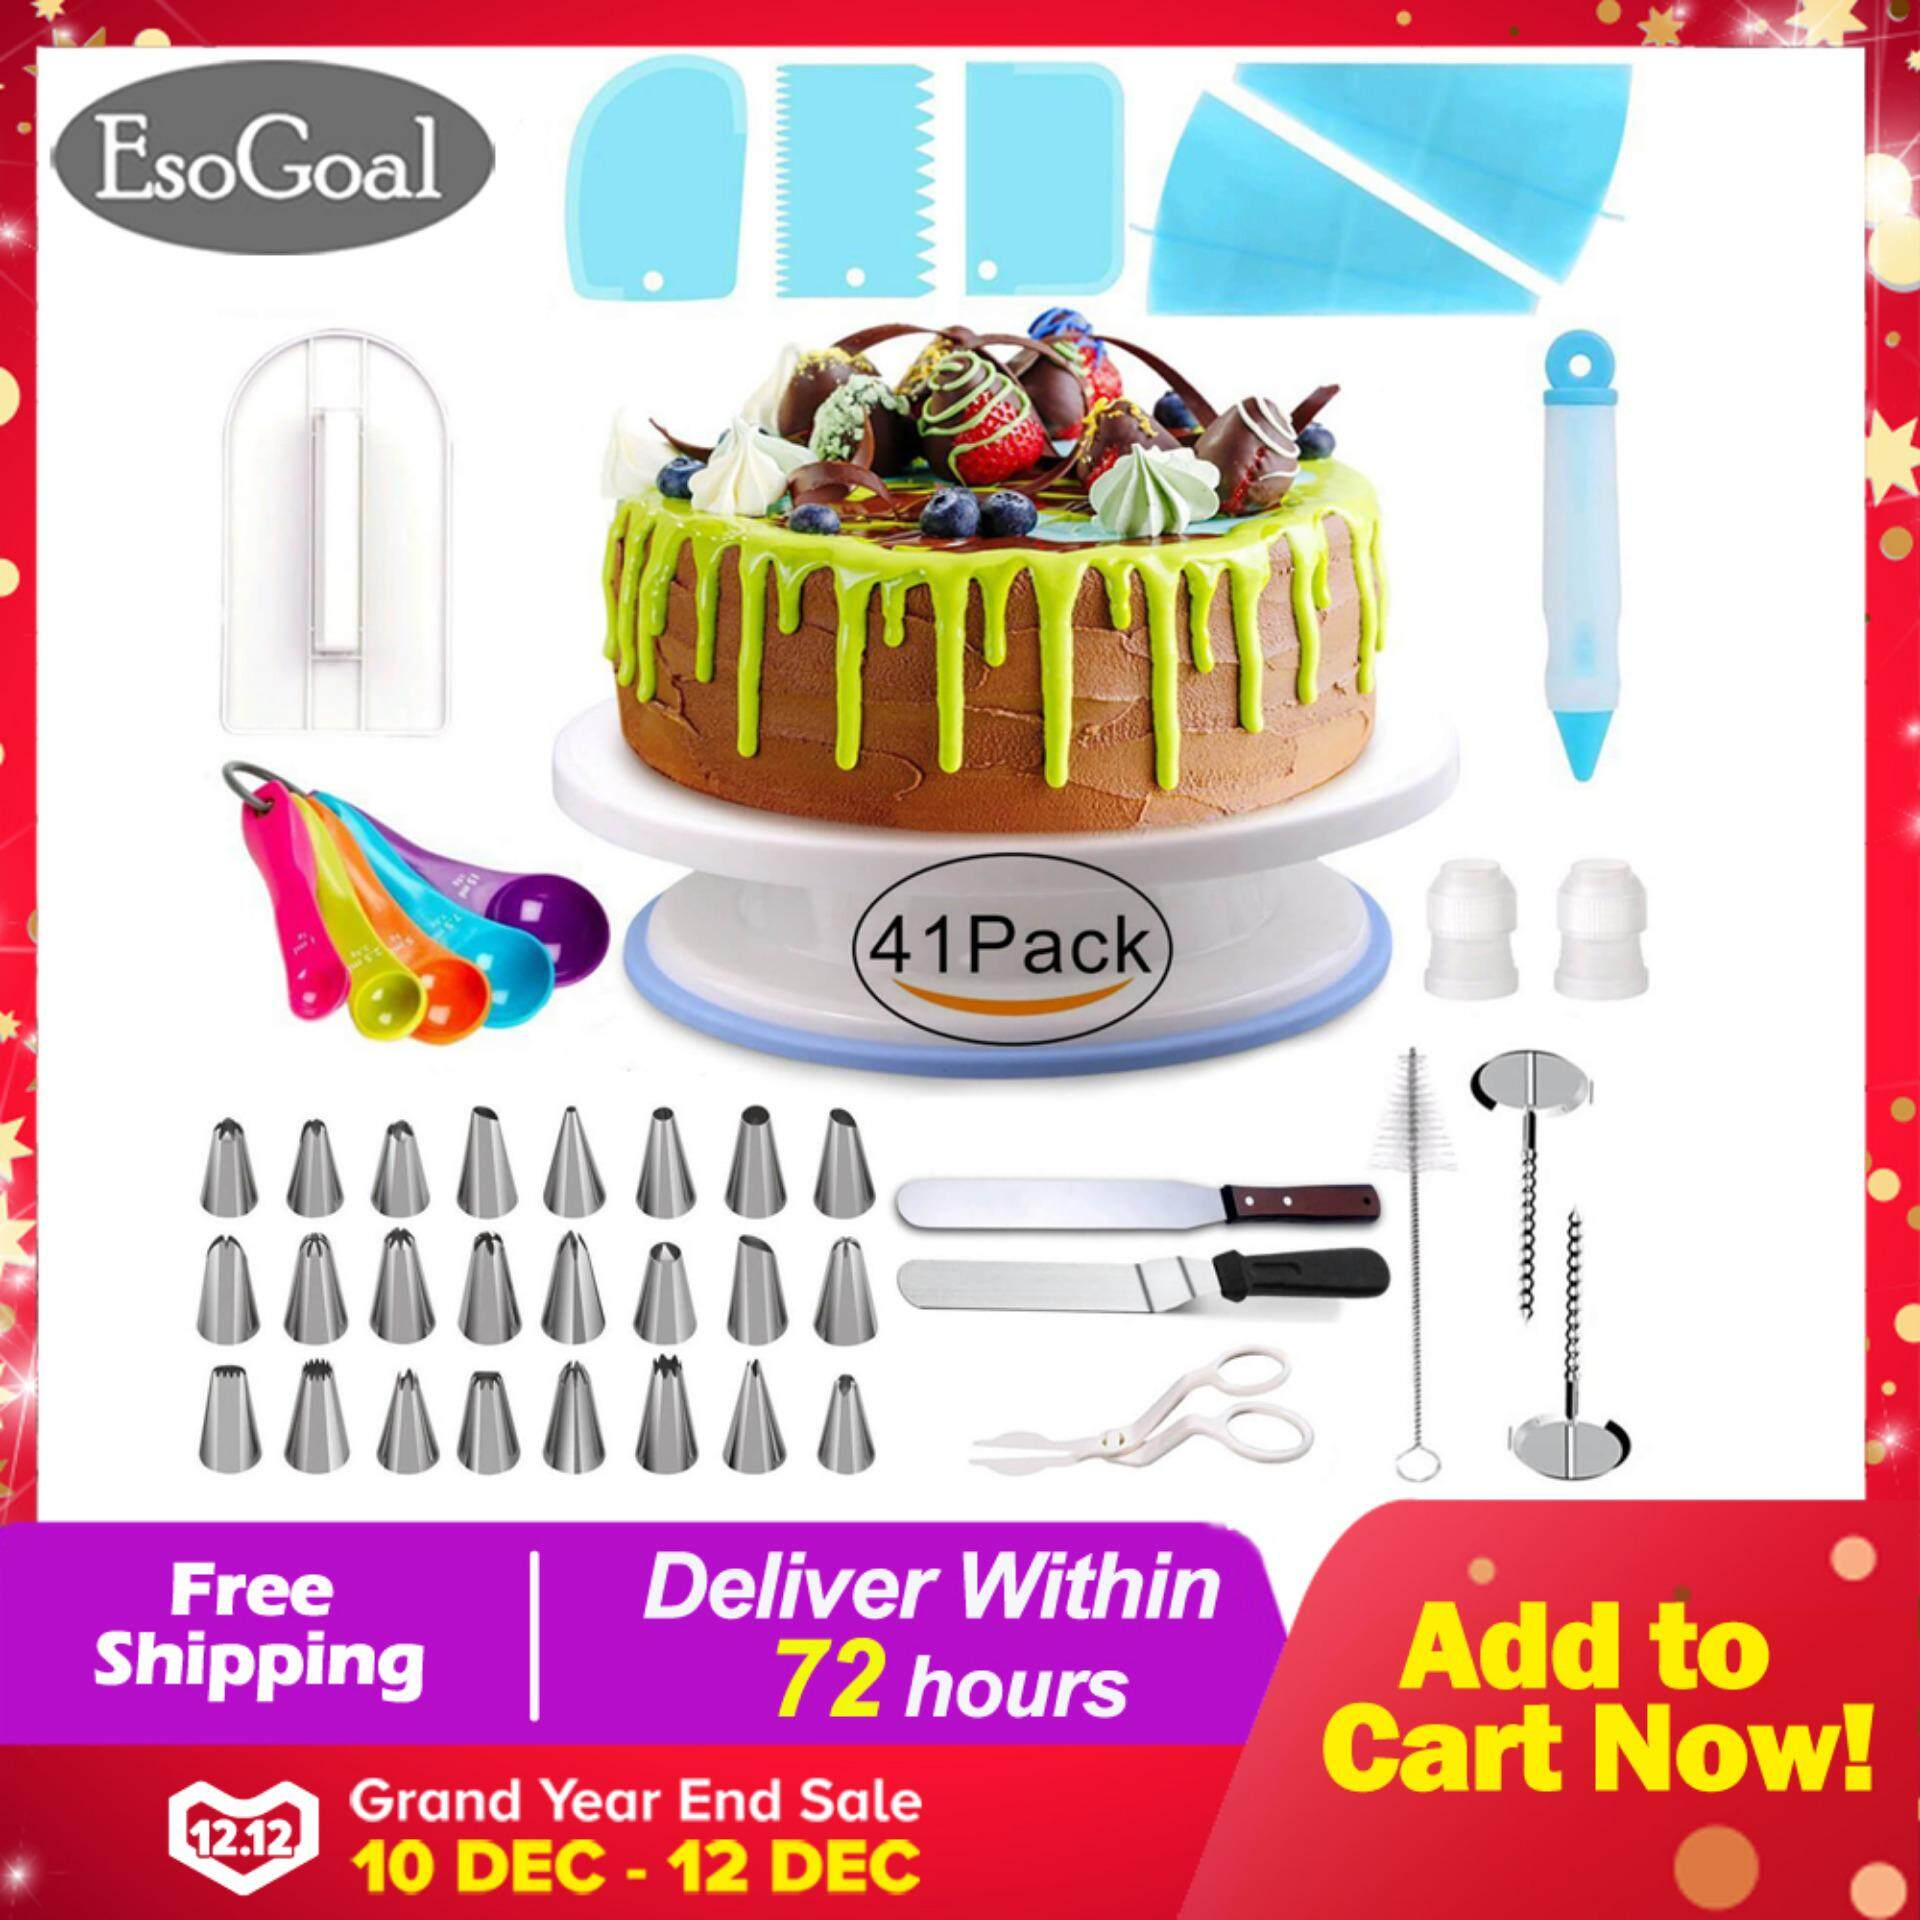 EsoGoal 41PCS Baking Tools Accessories Cake Decorating Supplies with Cake Turntable Baking Kit Set Includes: